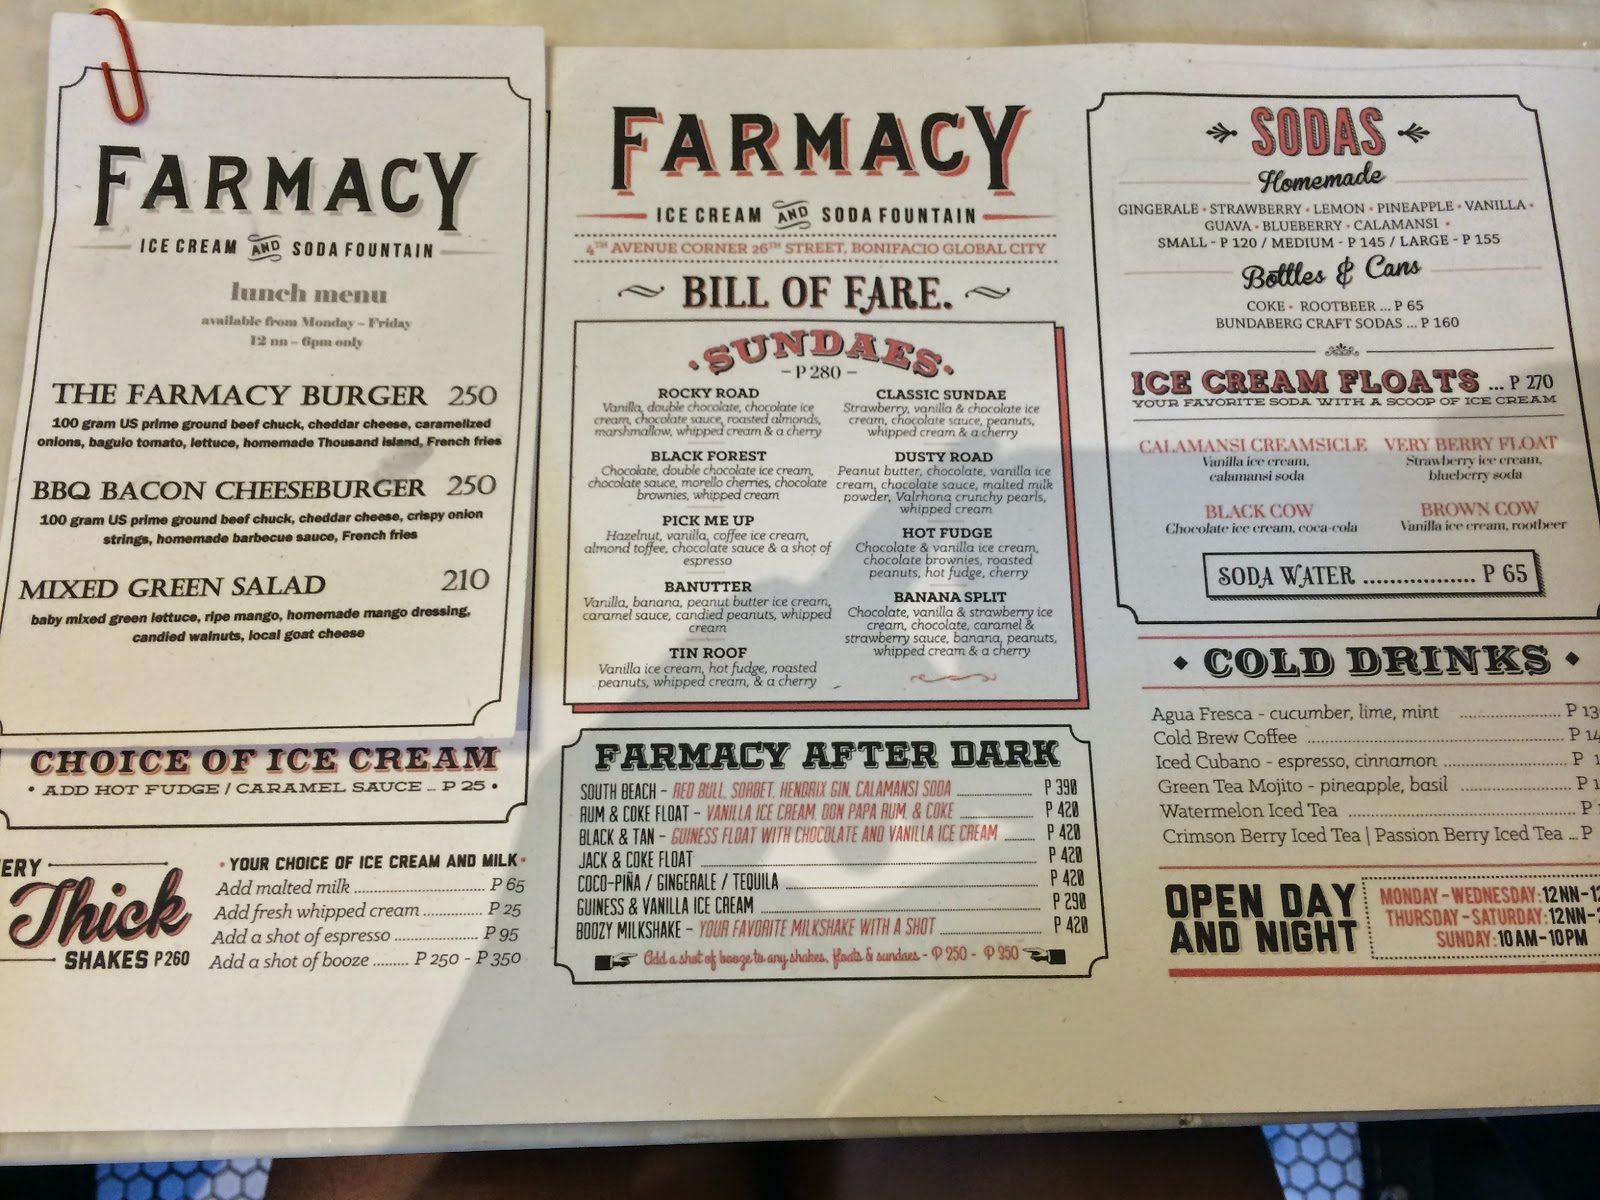 Farmacy Ice Cream and Soda Fountain menu